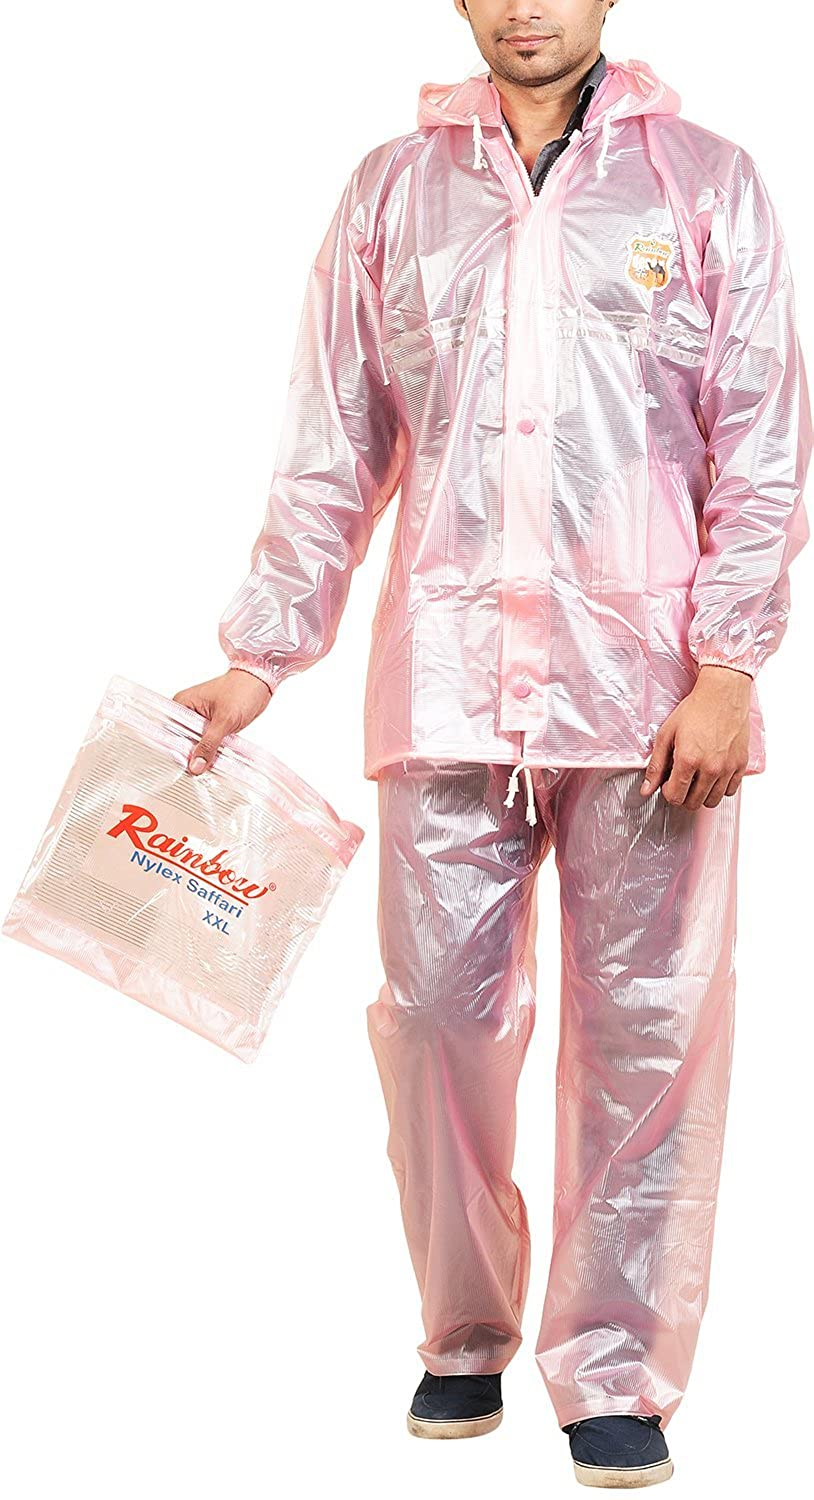 purchase authentic casual shoes usa cheap sale RAINBOW Men's Hooded Rainwear with Bag (Pink, XX-Large ...